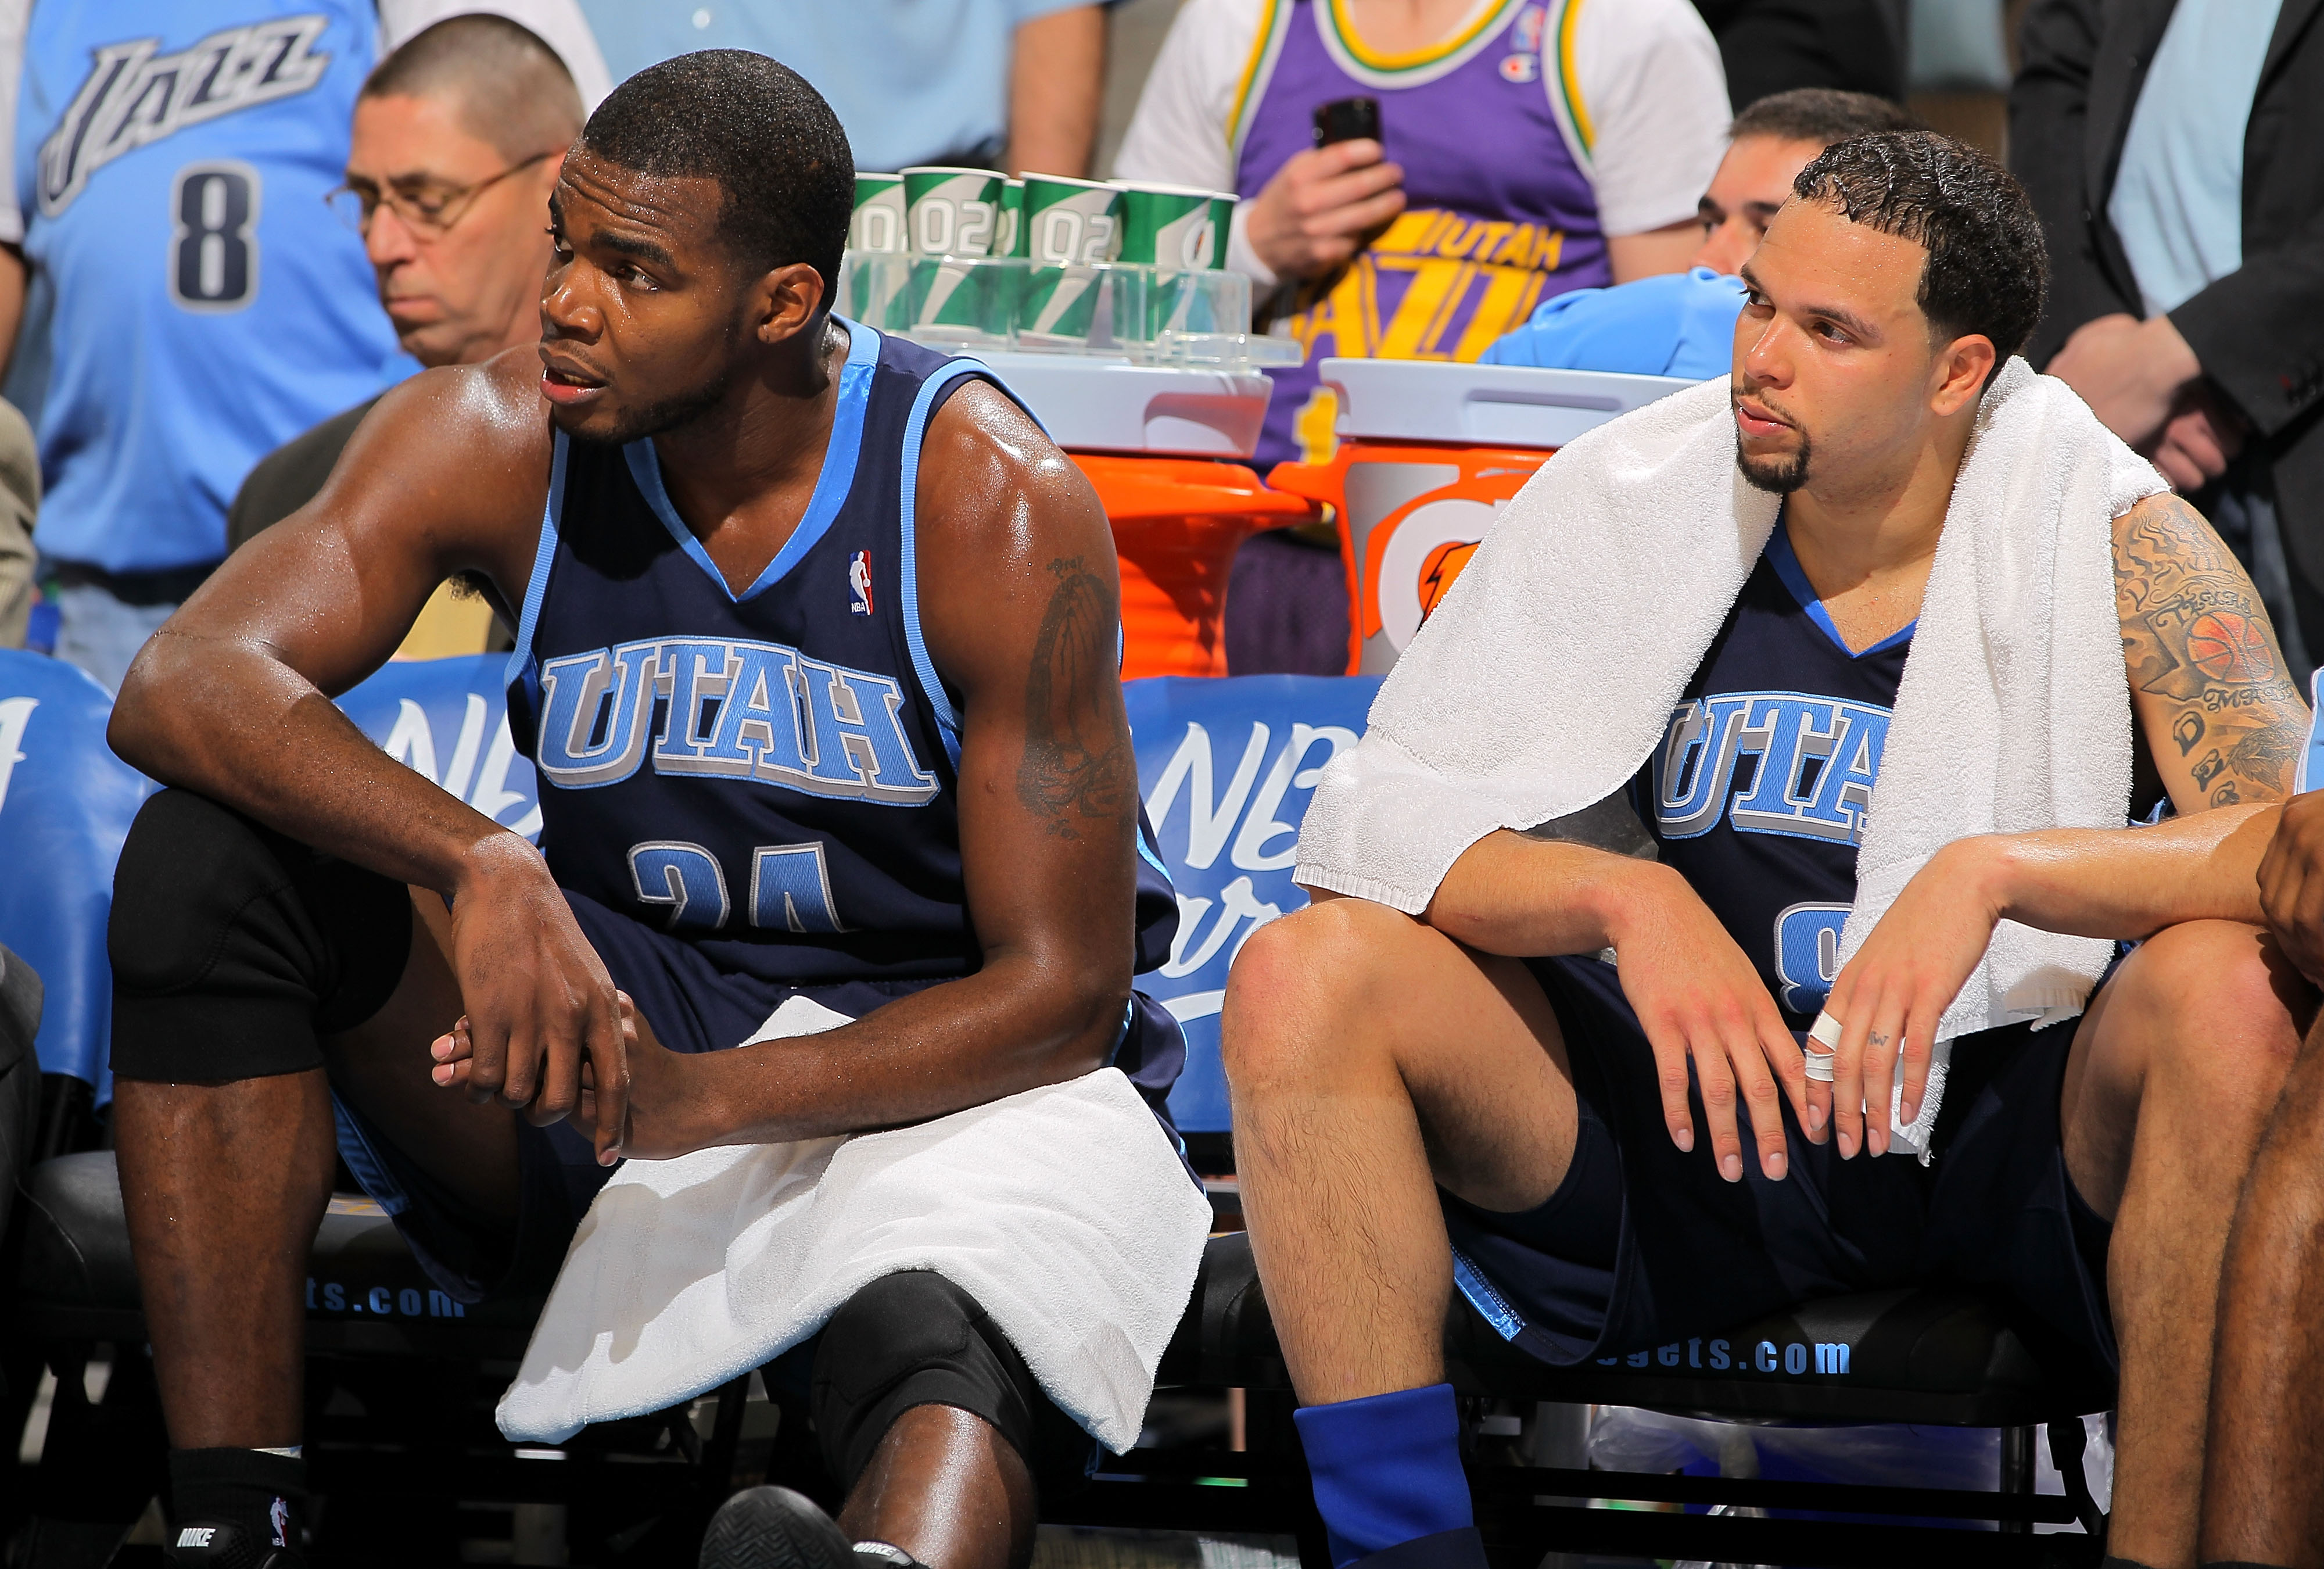 DENVER - APRIL 28:  Paul Millsap #24 and Deron Williams #8 of the Utah Jazz sit on the bench in the closing minutes against the Denver Nuggets in Game Five of the Western Conference Quarterfinals of the 2010 NBA Playoffs at the Pepsi Center on April 28, 2